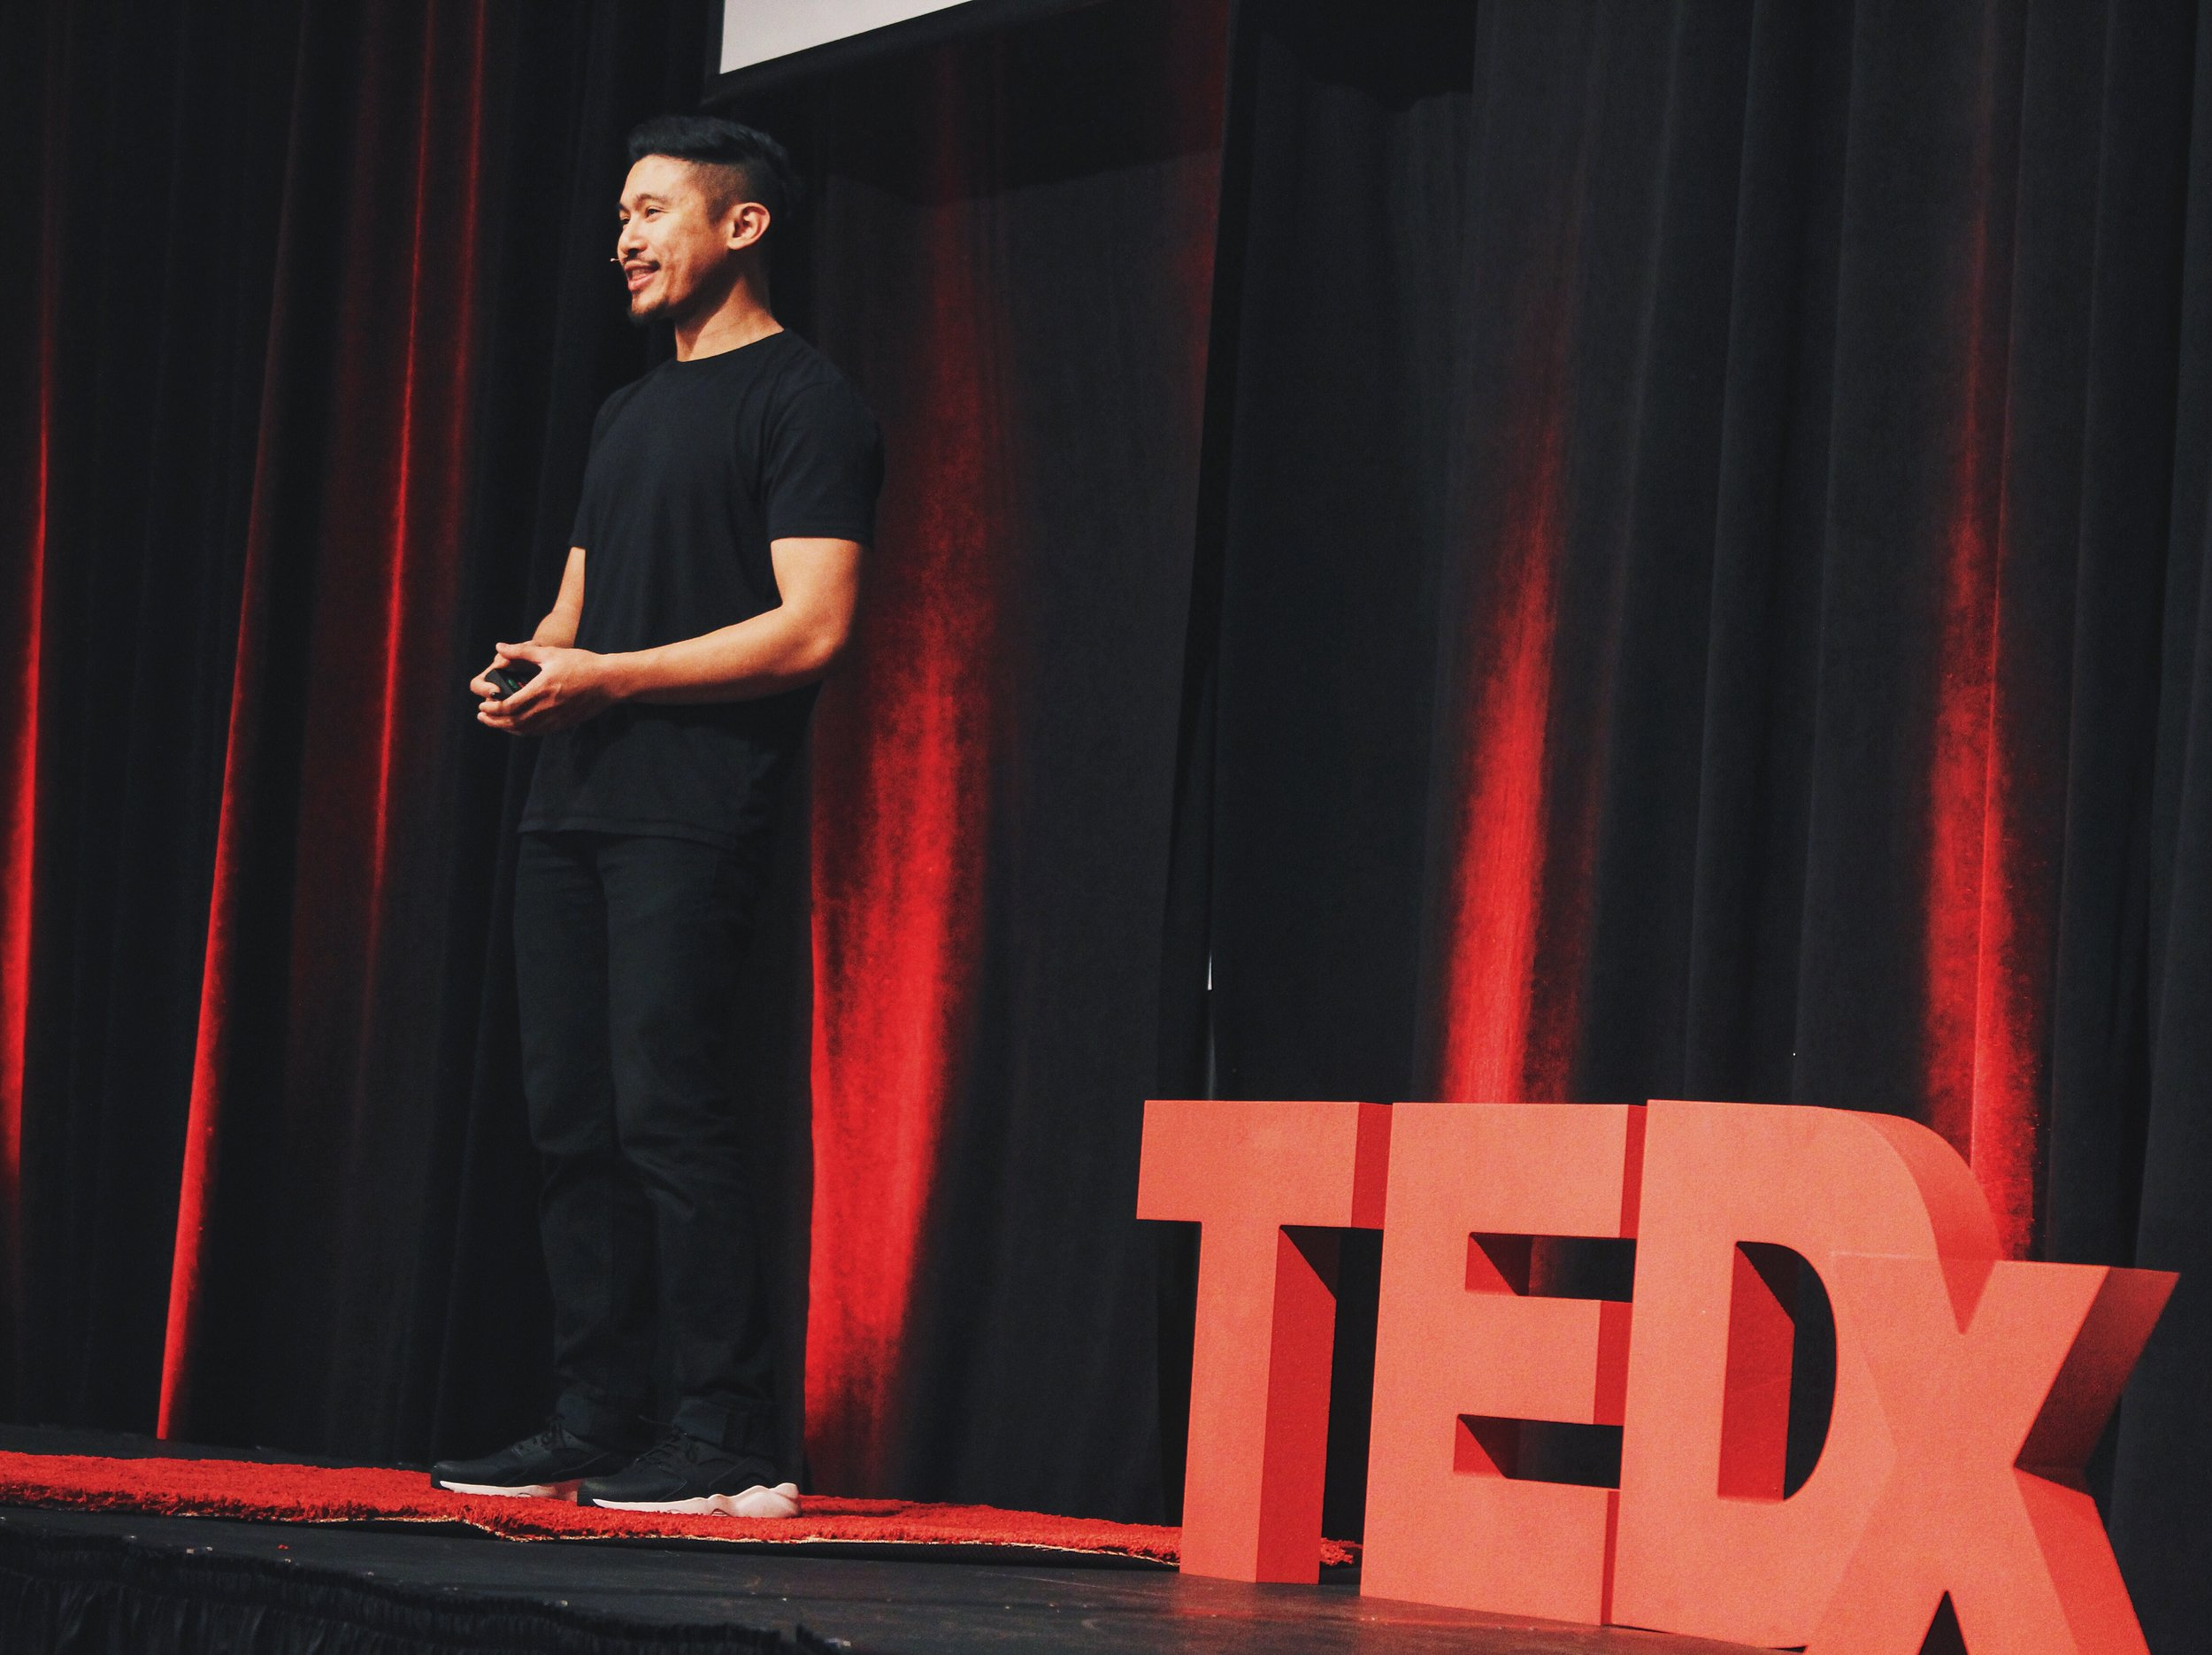 2016 speaking on stage at TEDxCSULB.